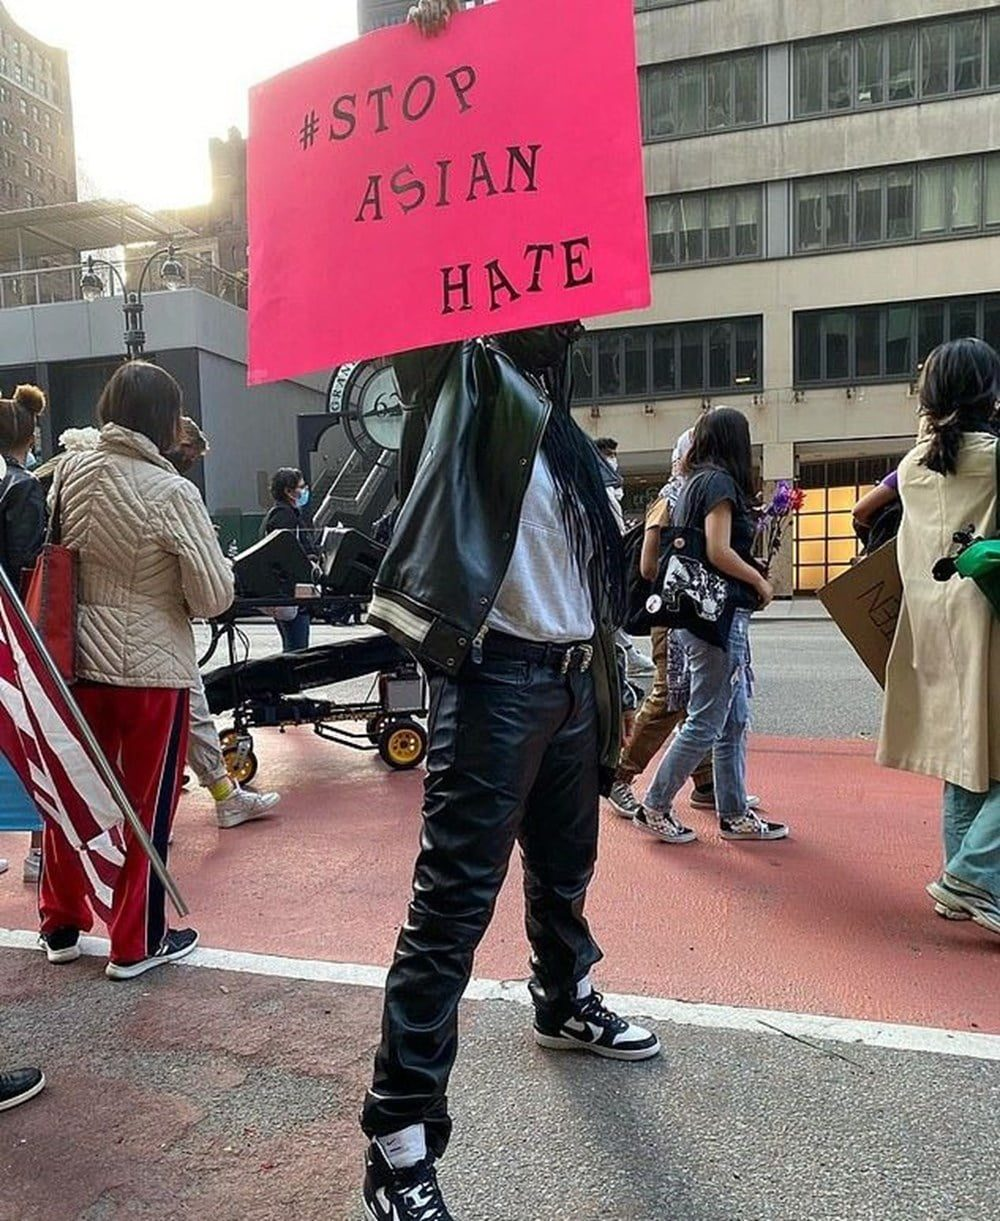 American singer Rihanna takes to the streets to protest racist attacks on Asians 2